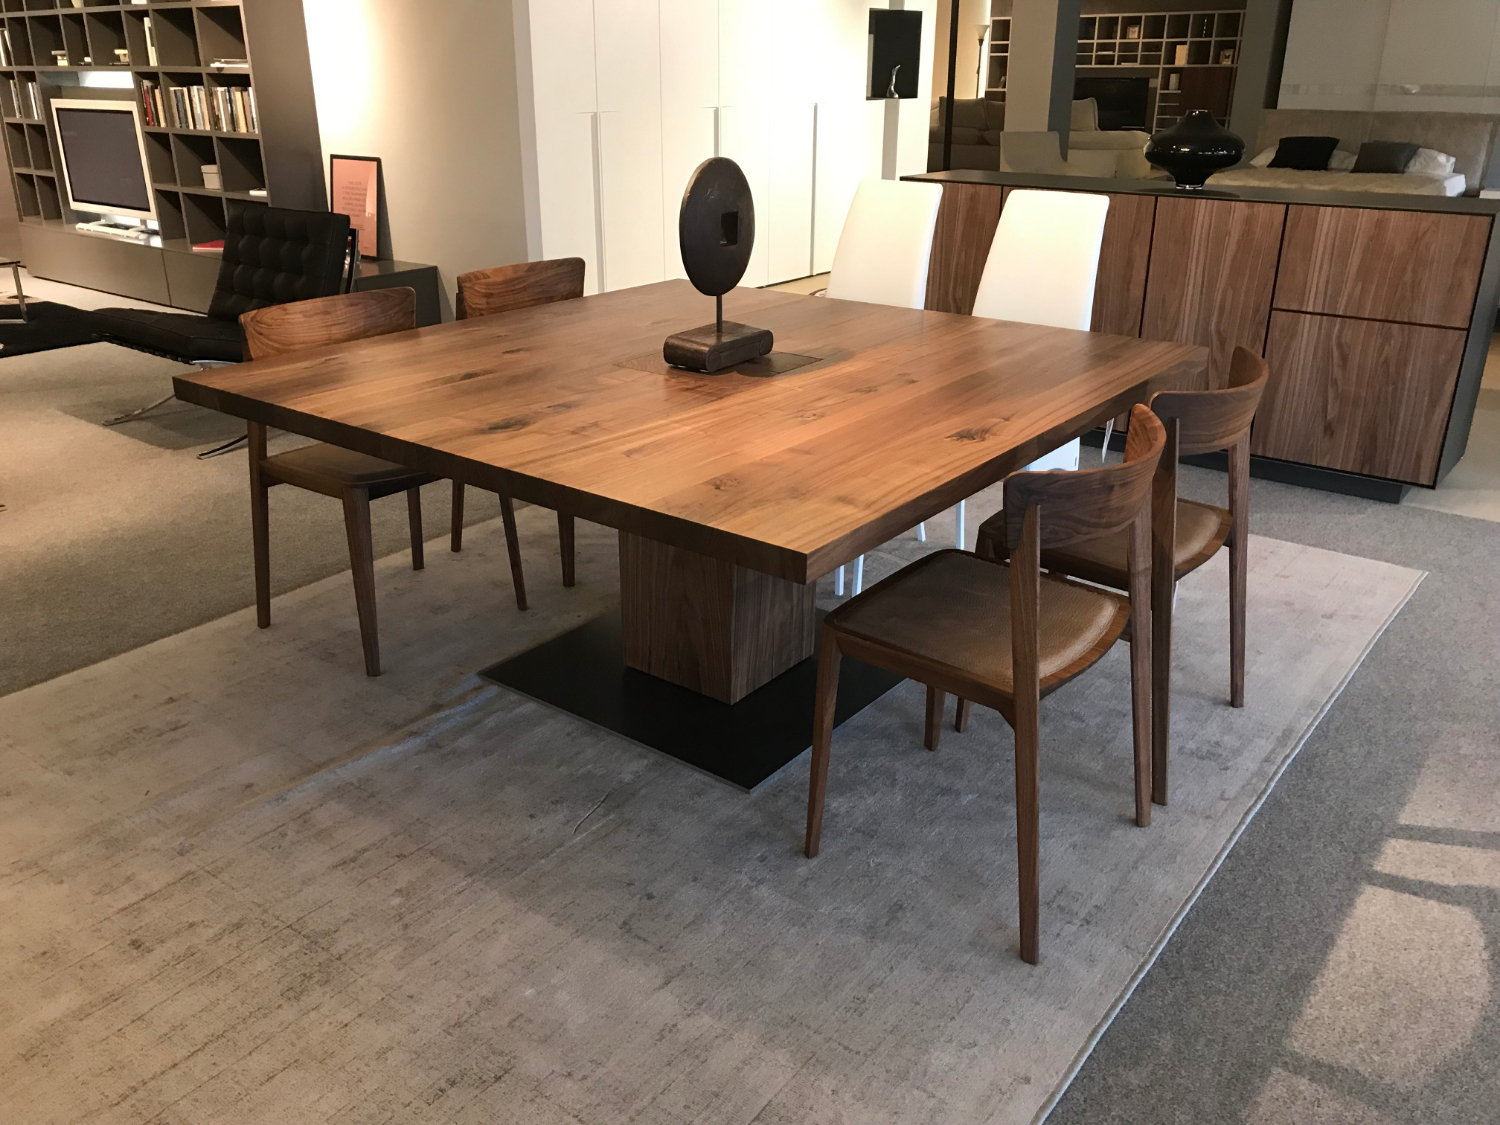 Boss Executive Riva 1920 - outlet - Prompte Lieferung